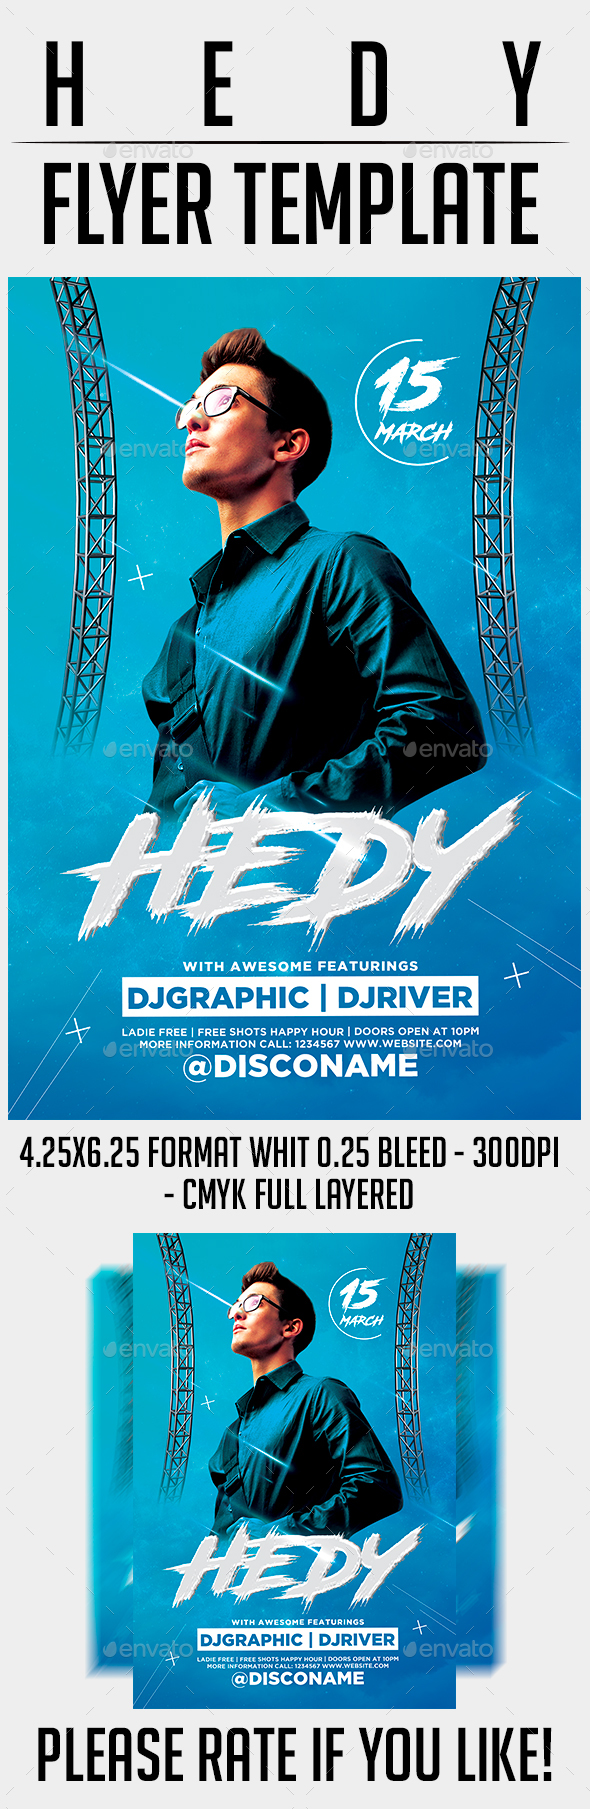 Hedy Flyer Template - Events Flyers